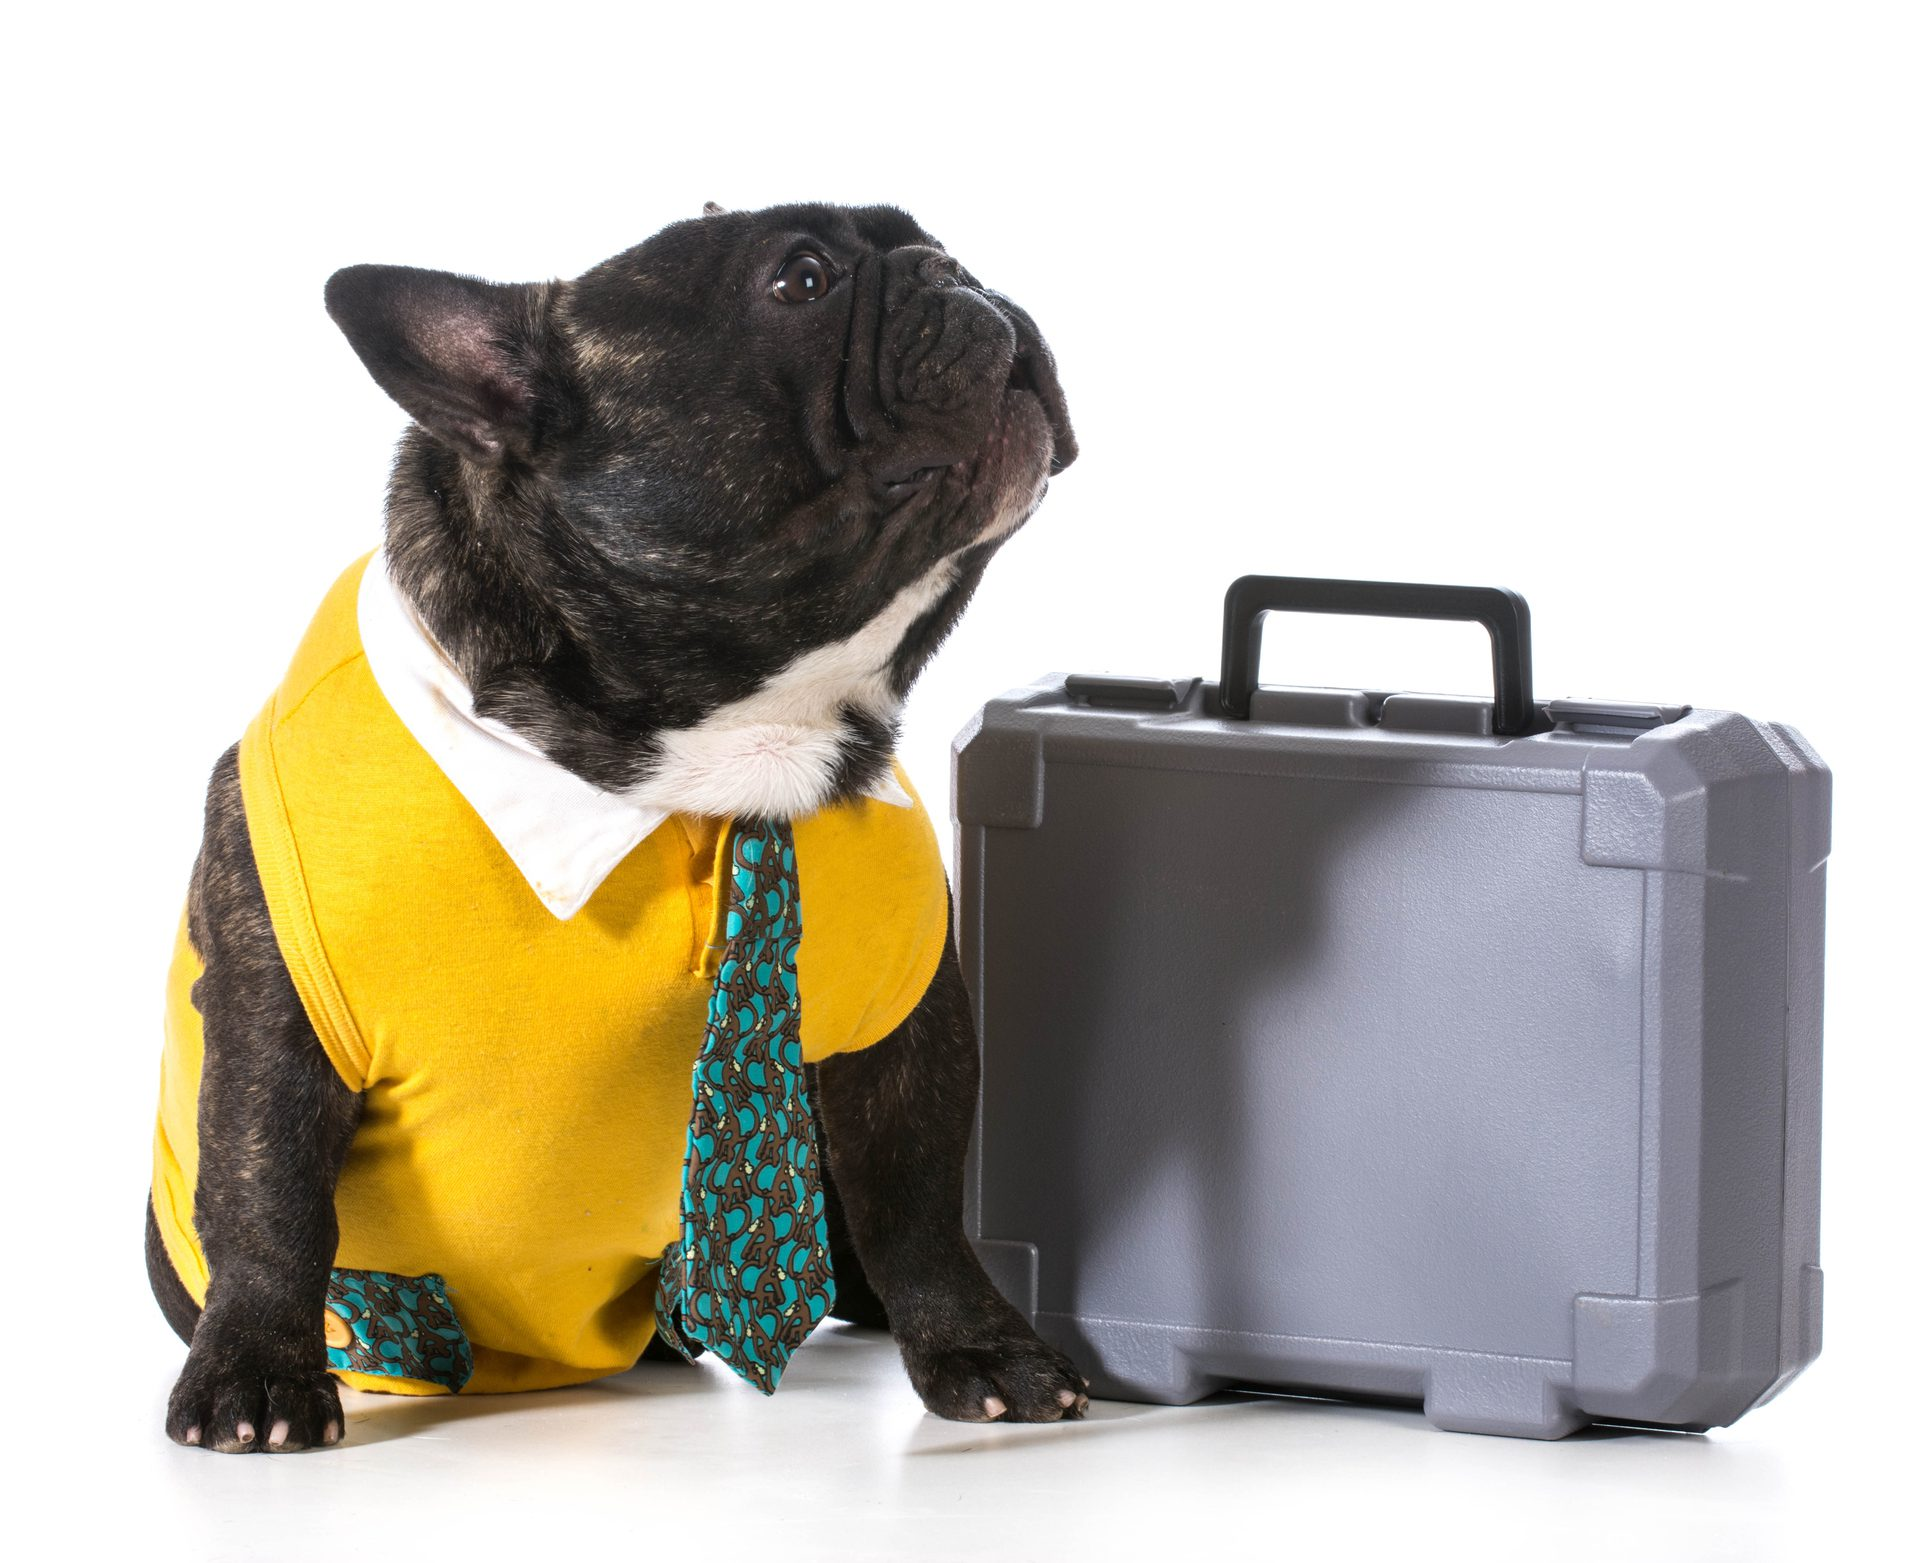 working dog - french bulldog with silly expression sitting beside briefcase